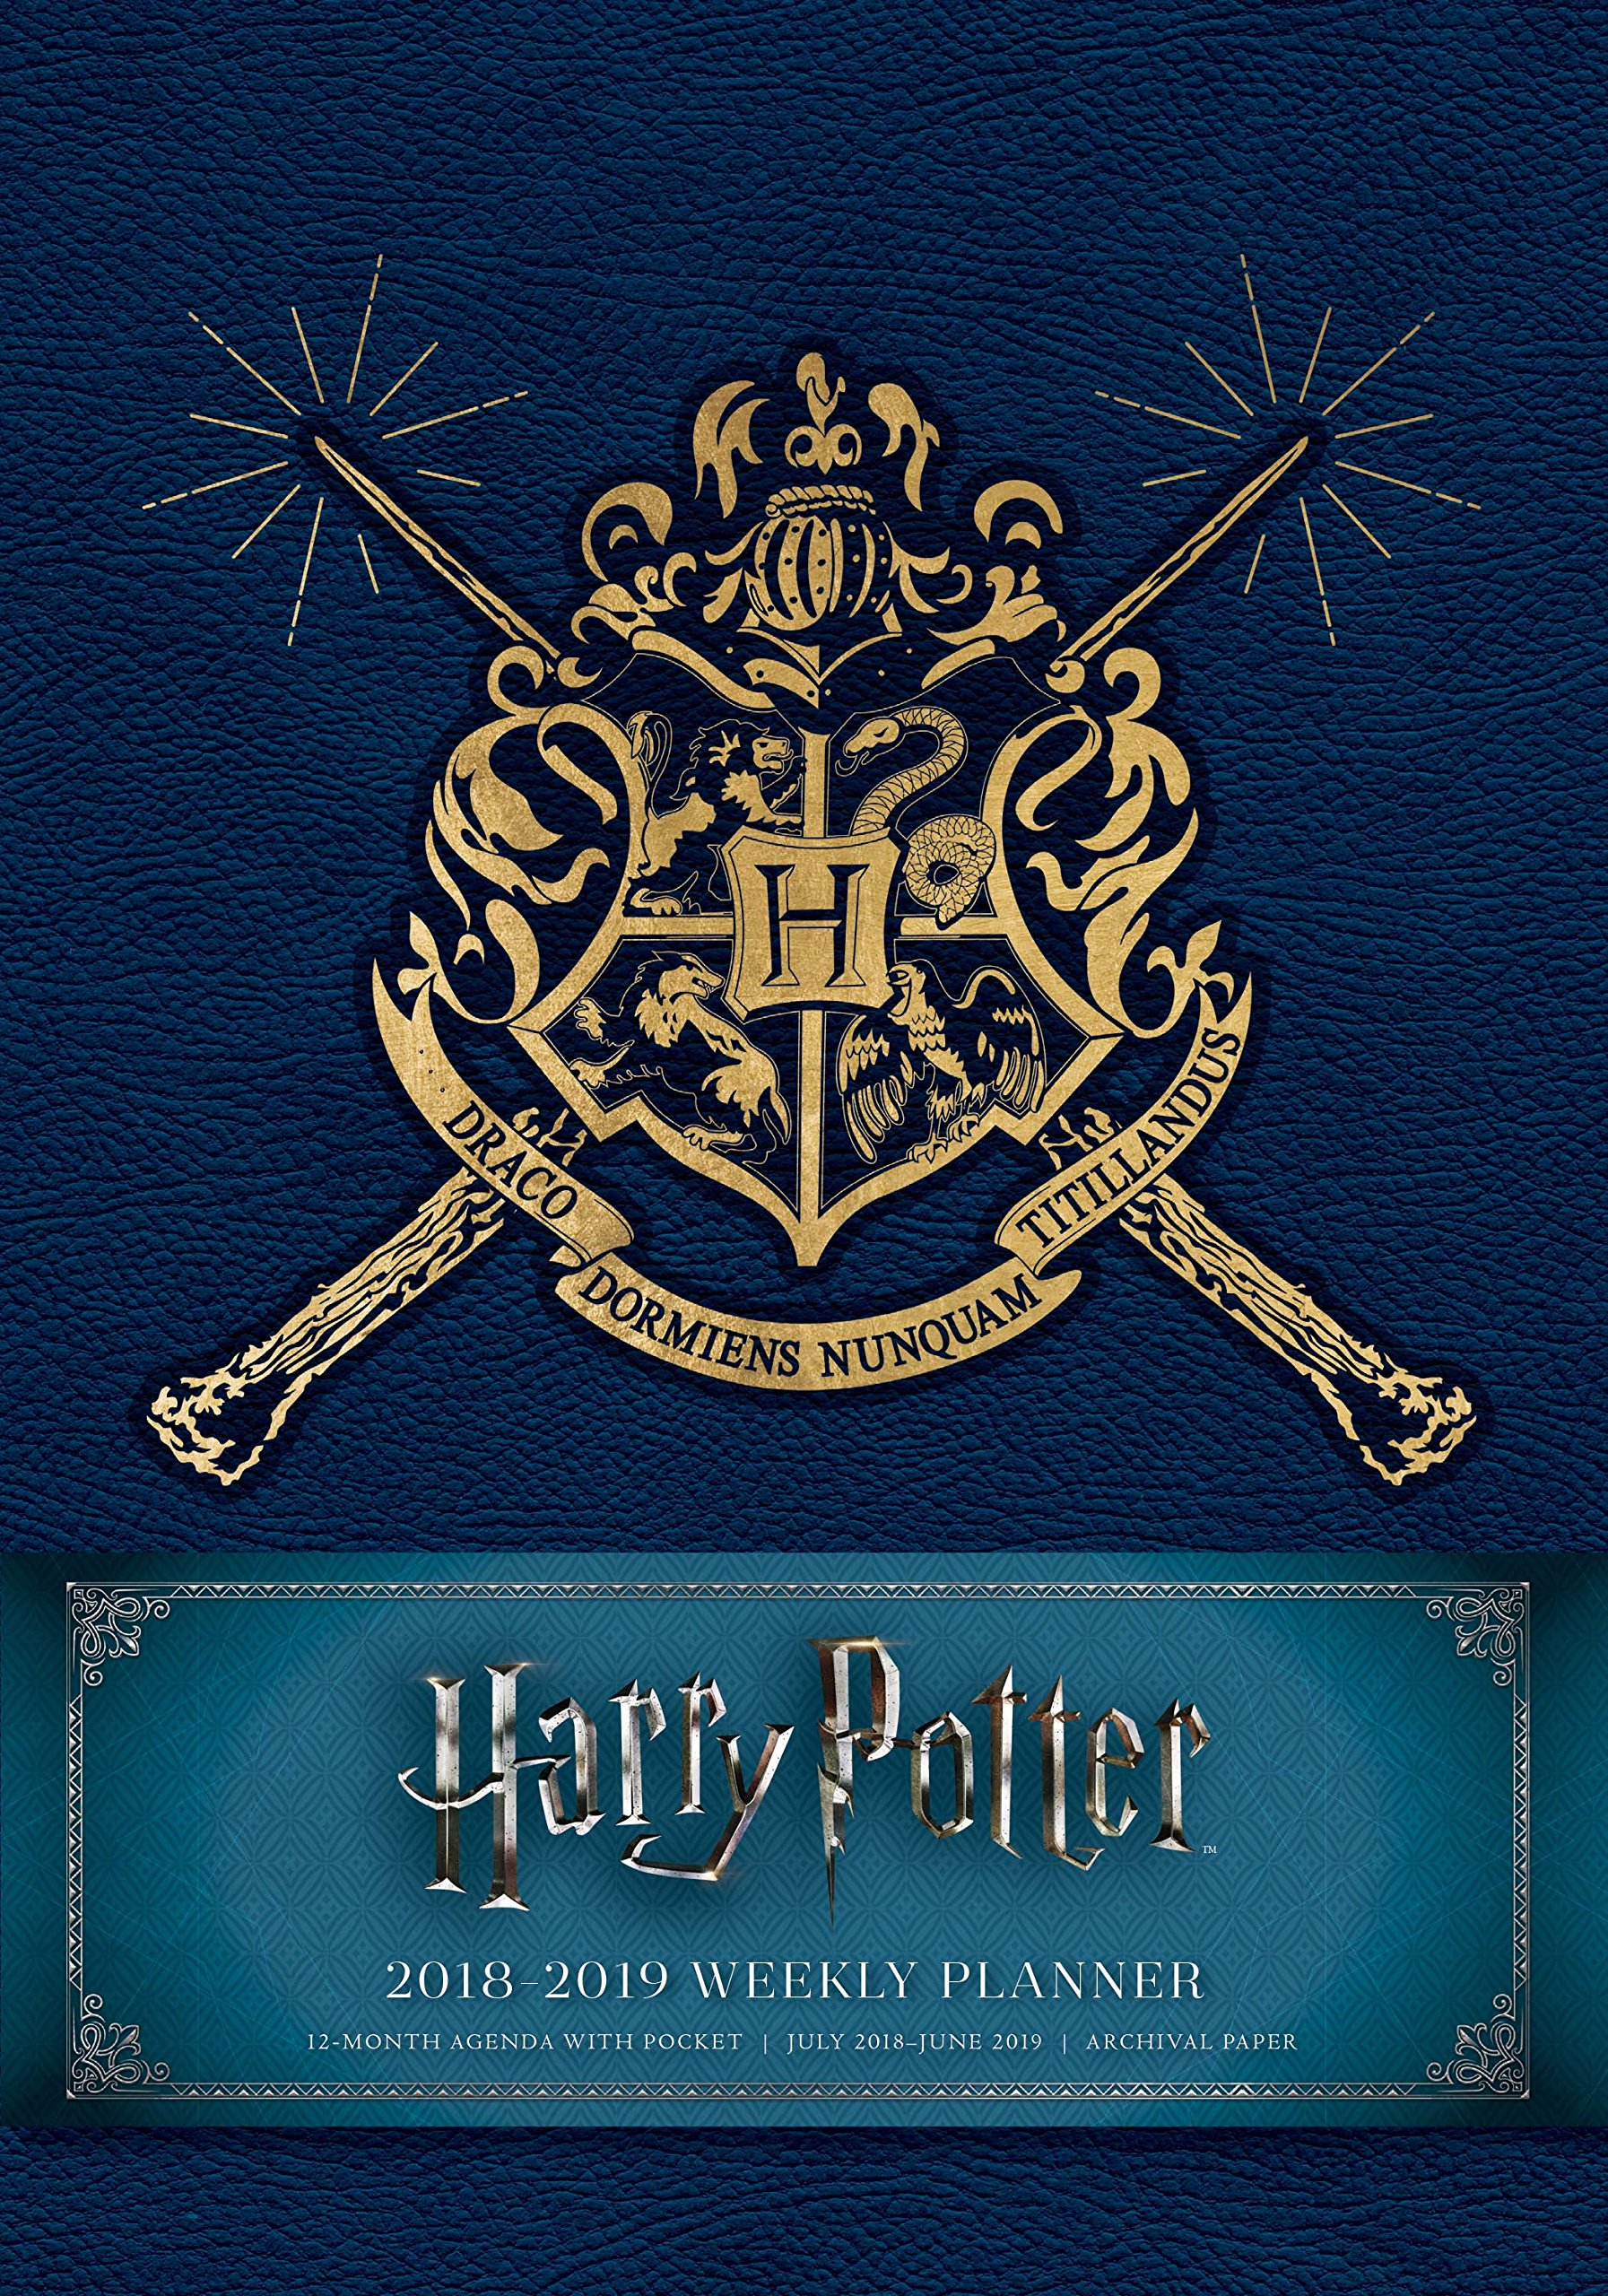 Harry Potter 2019 Weekly Planner: UK Edition: 9781683835738 ...